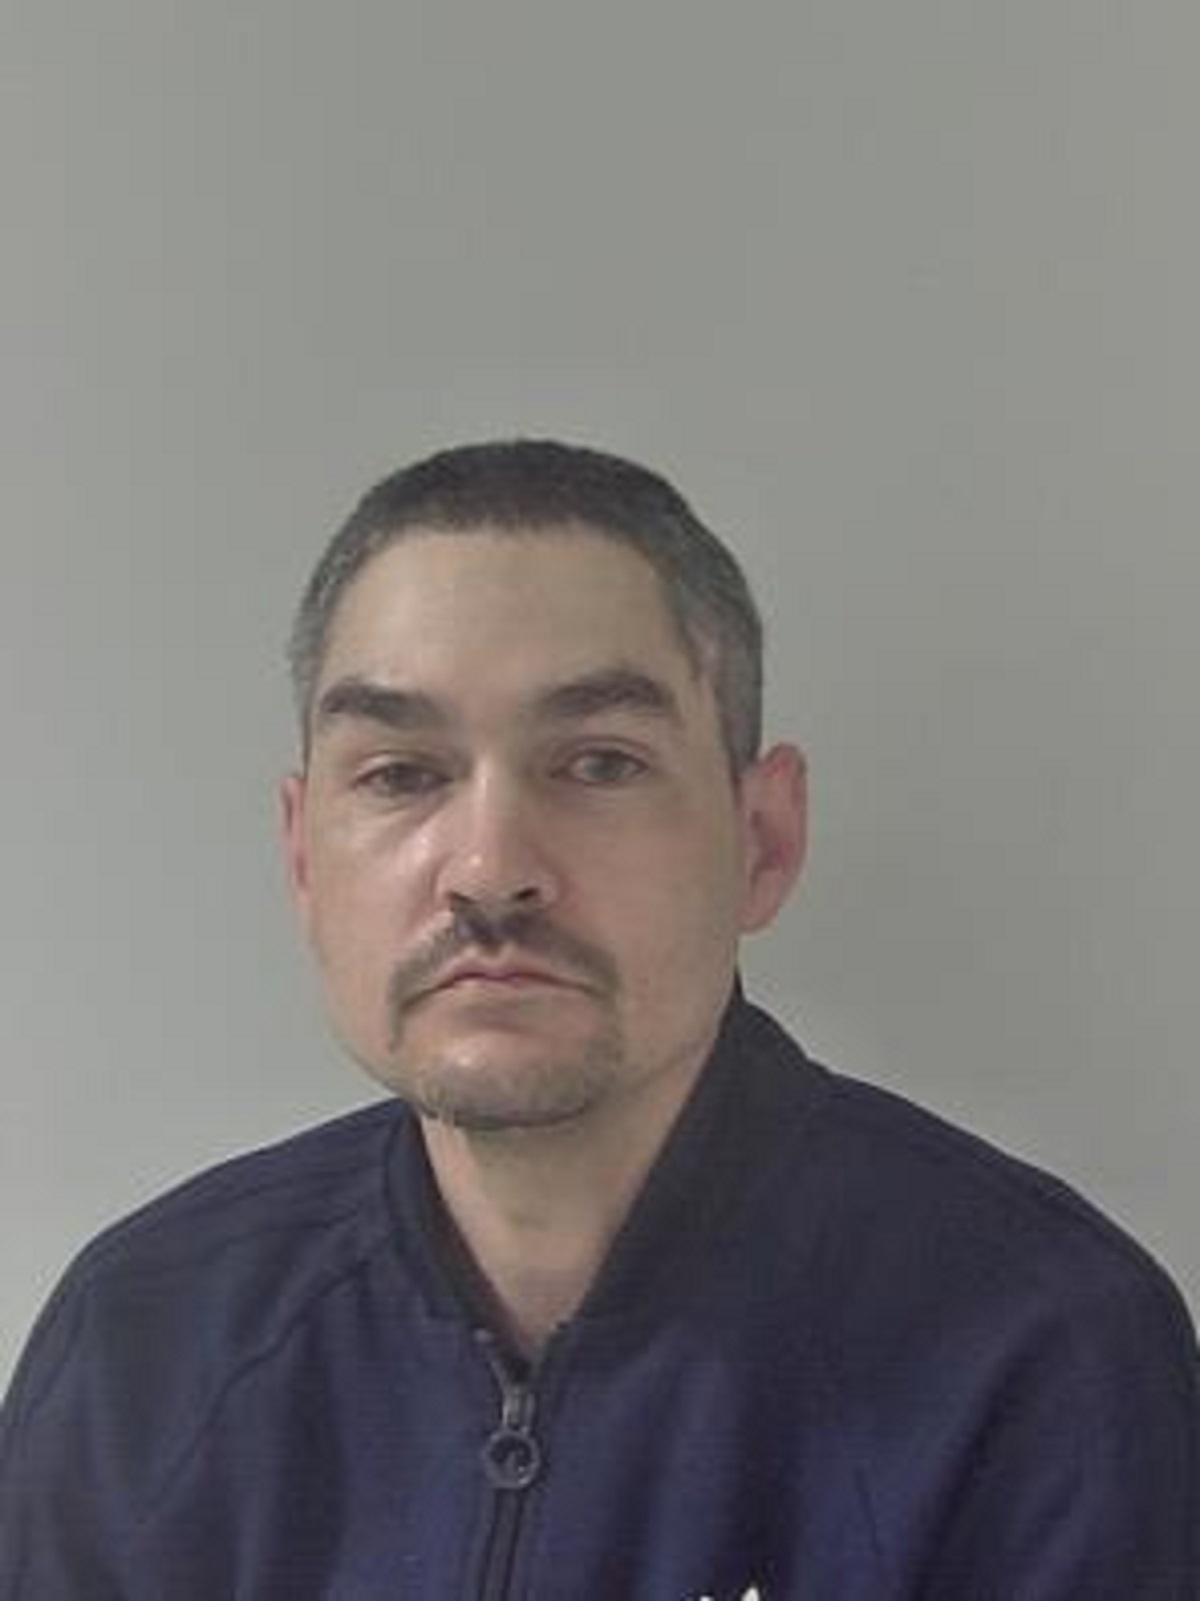 JAILED: Tariq Stevens. Photo: West Mercia Police